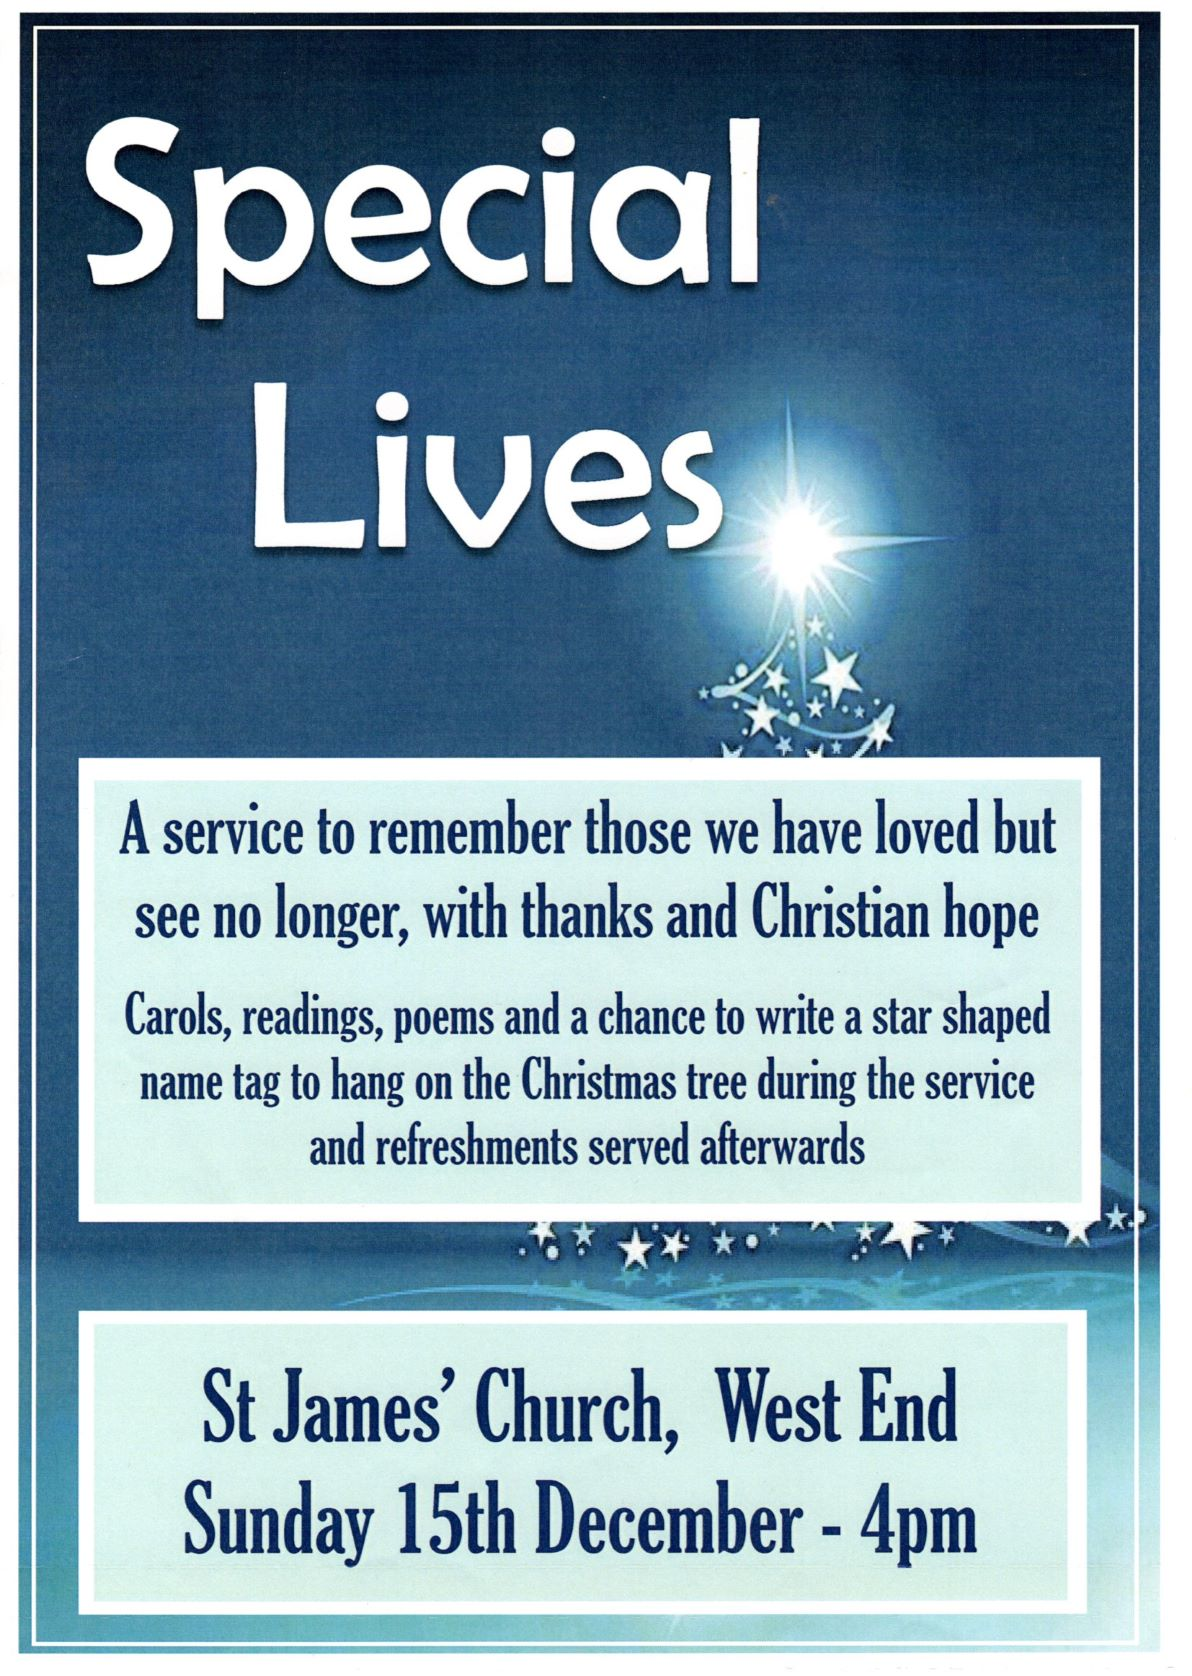 Special Lives Service